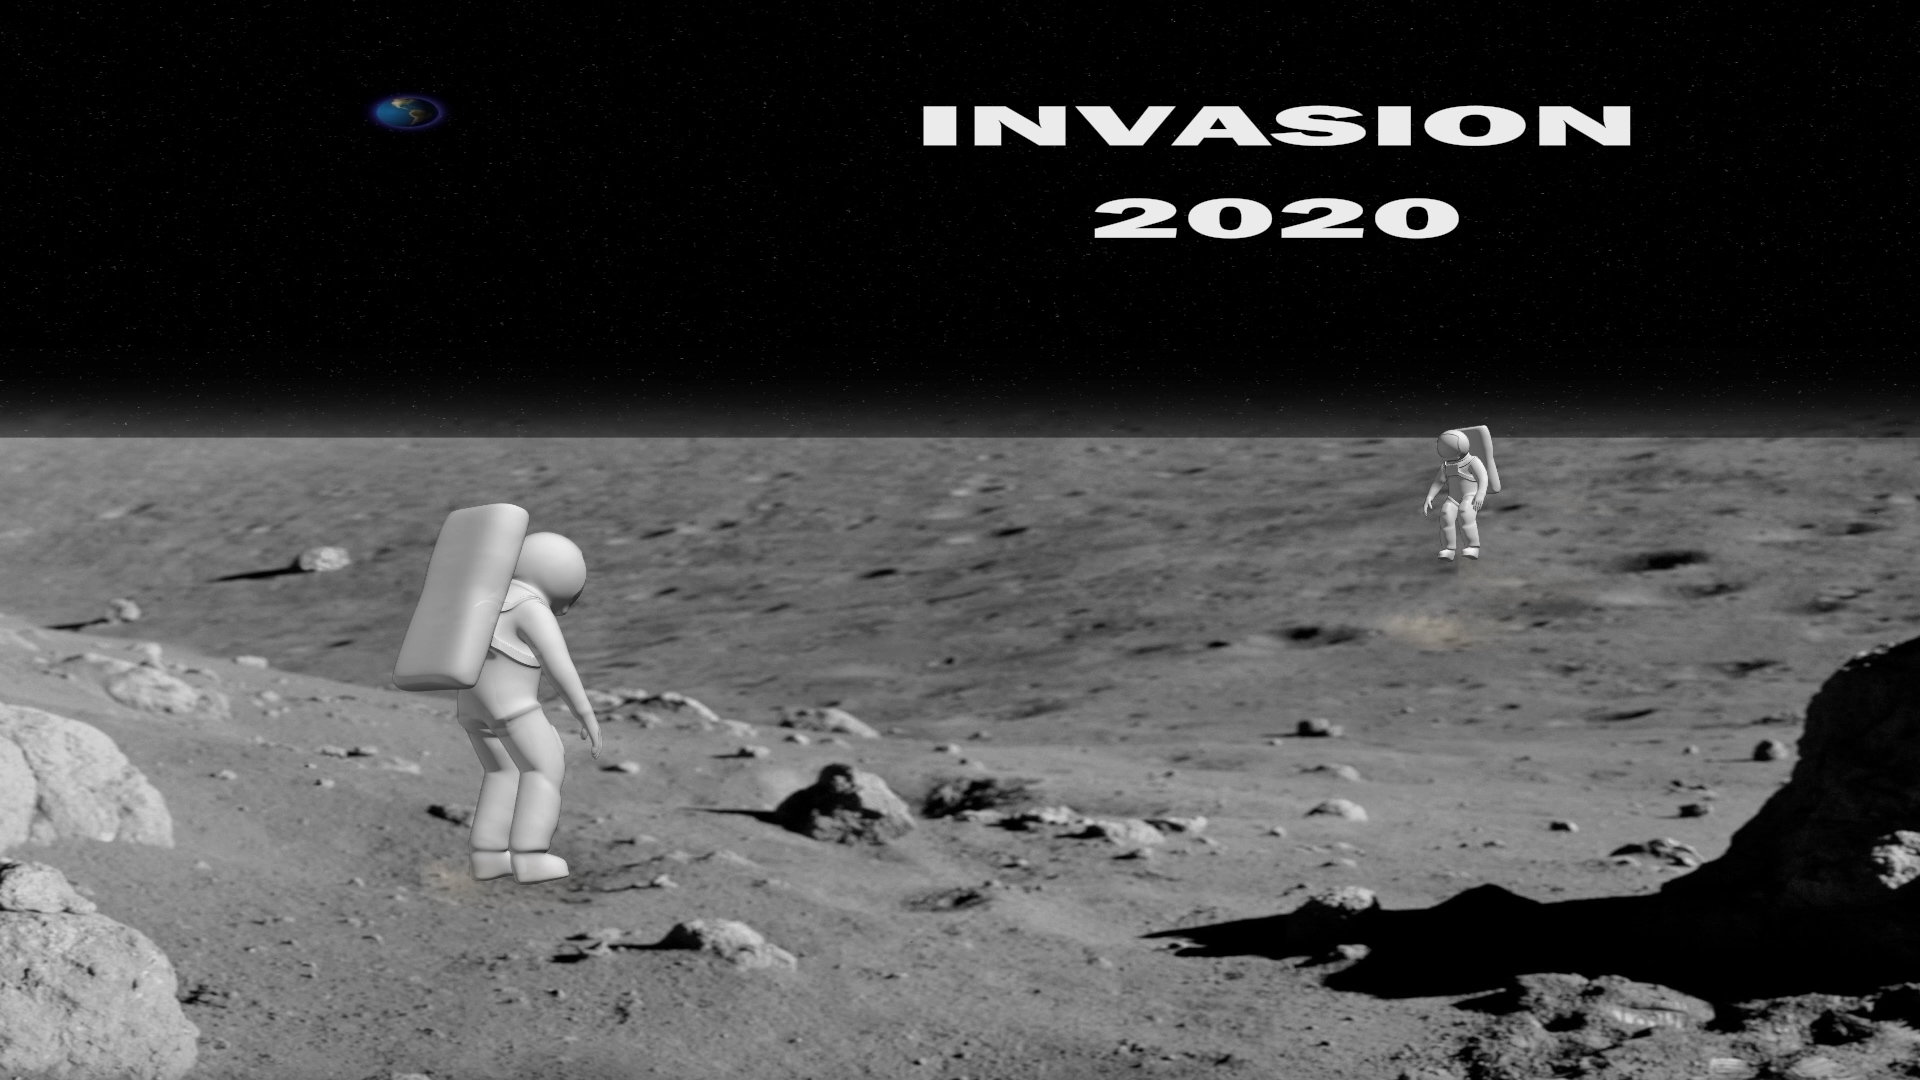 My Rode Reel 2020 Invasion 2020